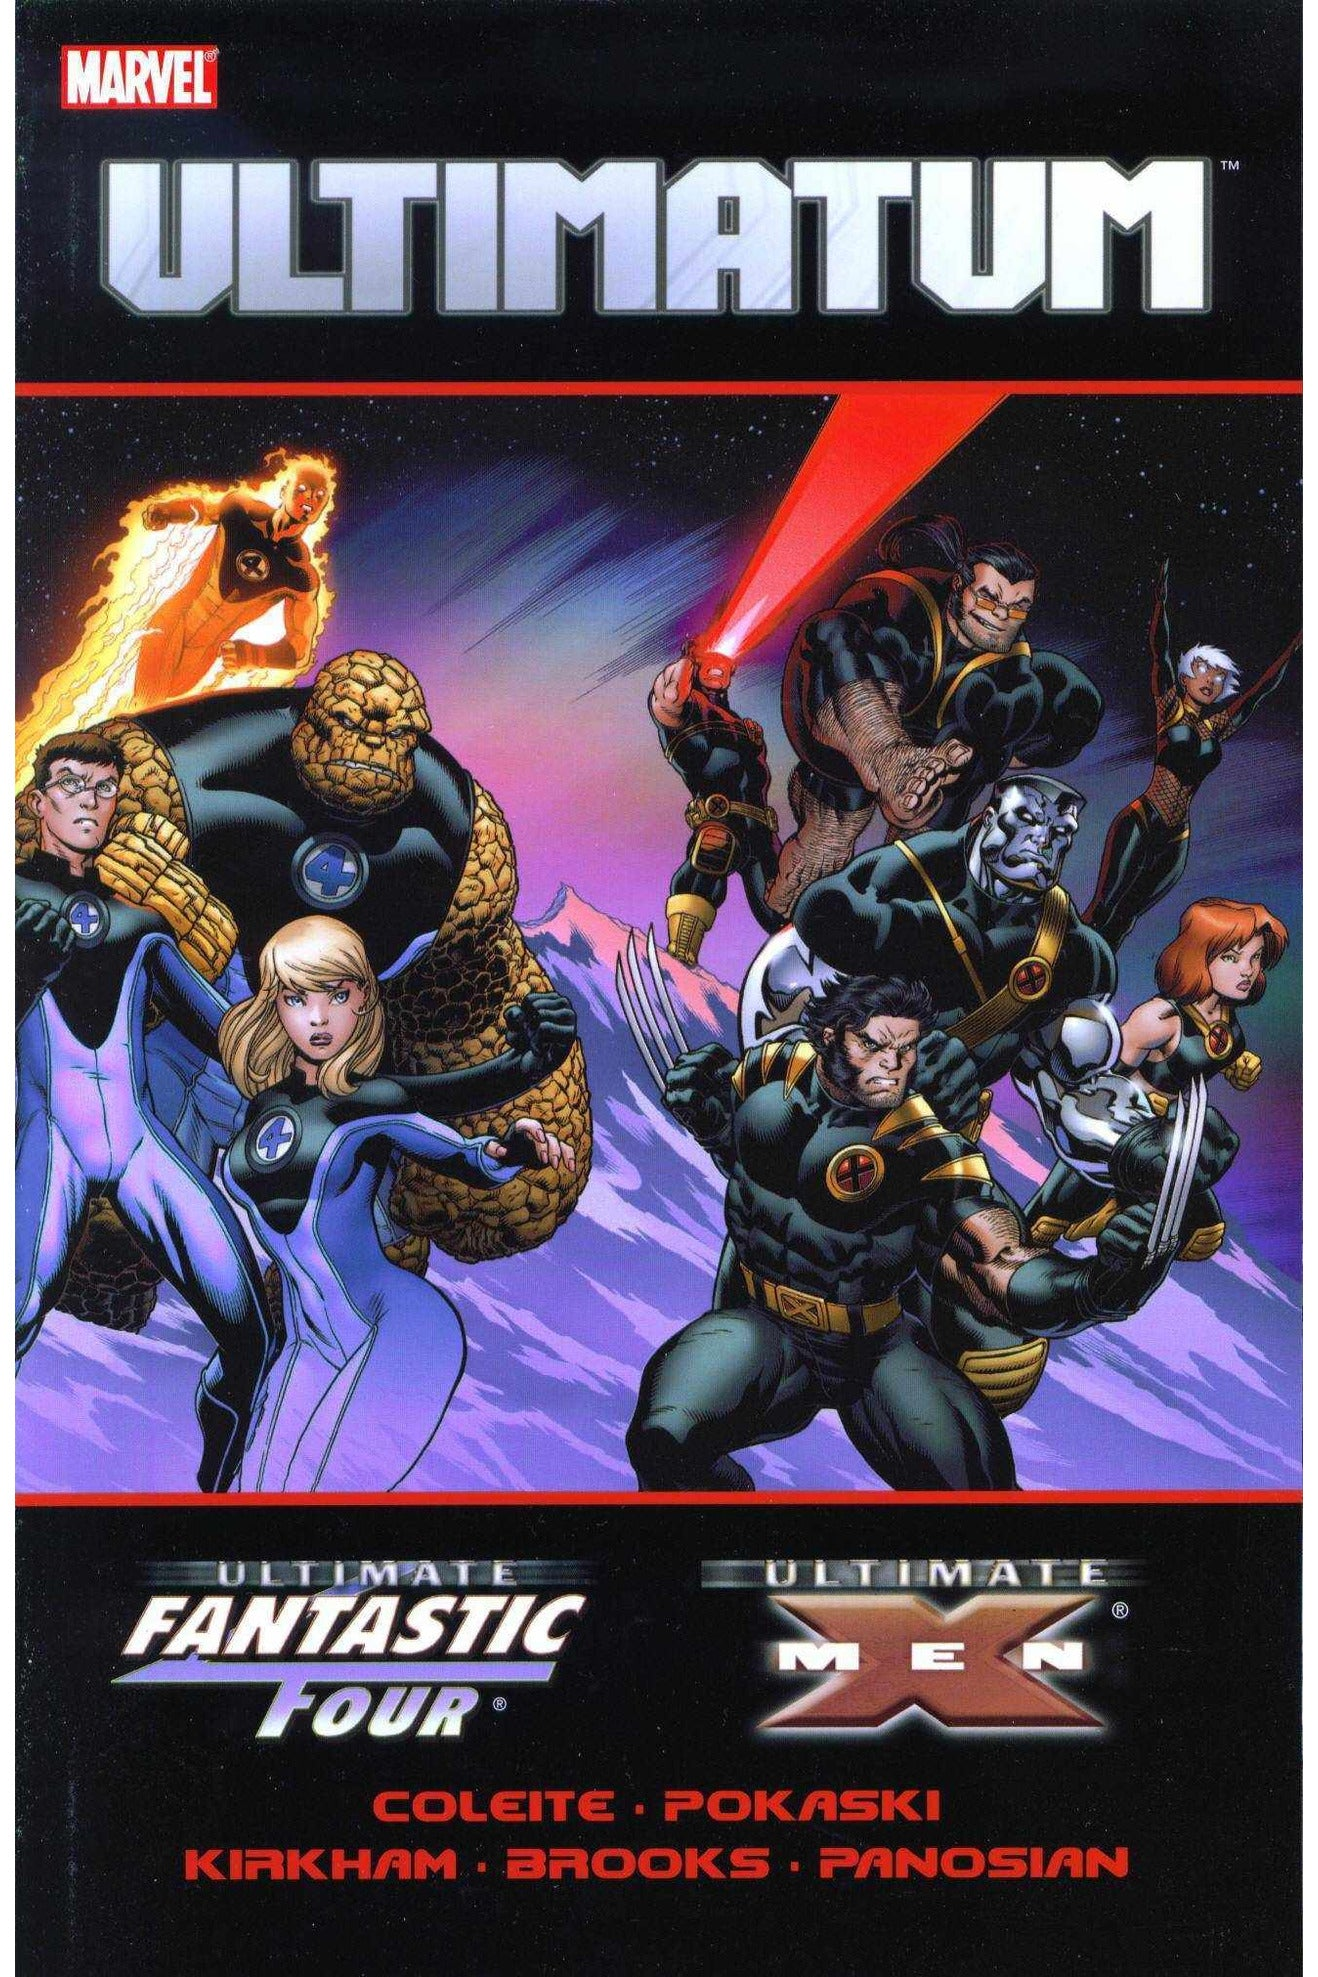 ultimatum-x-men-fantastic-four-diamond-9780785134336-thegamersden.com